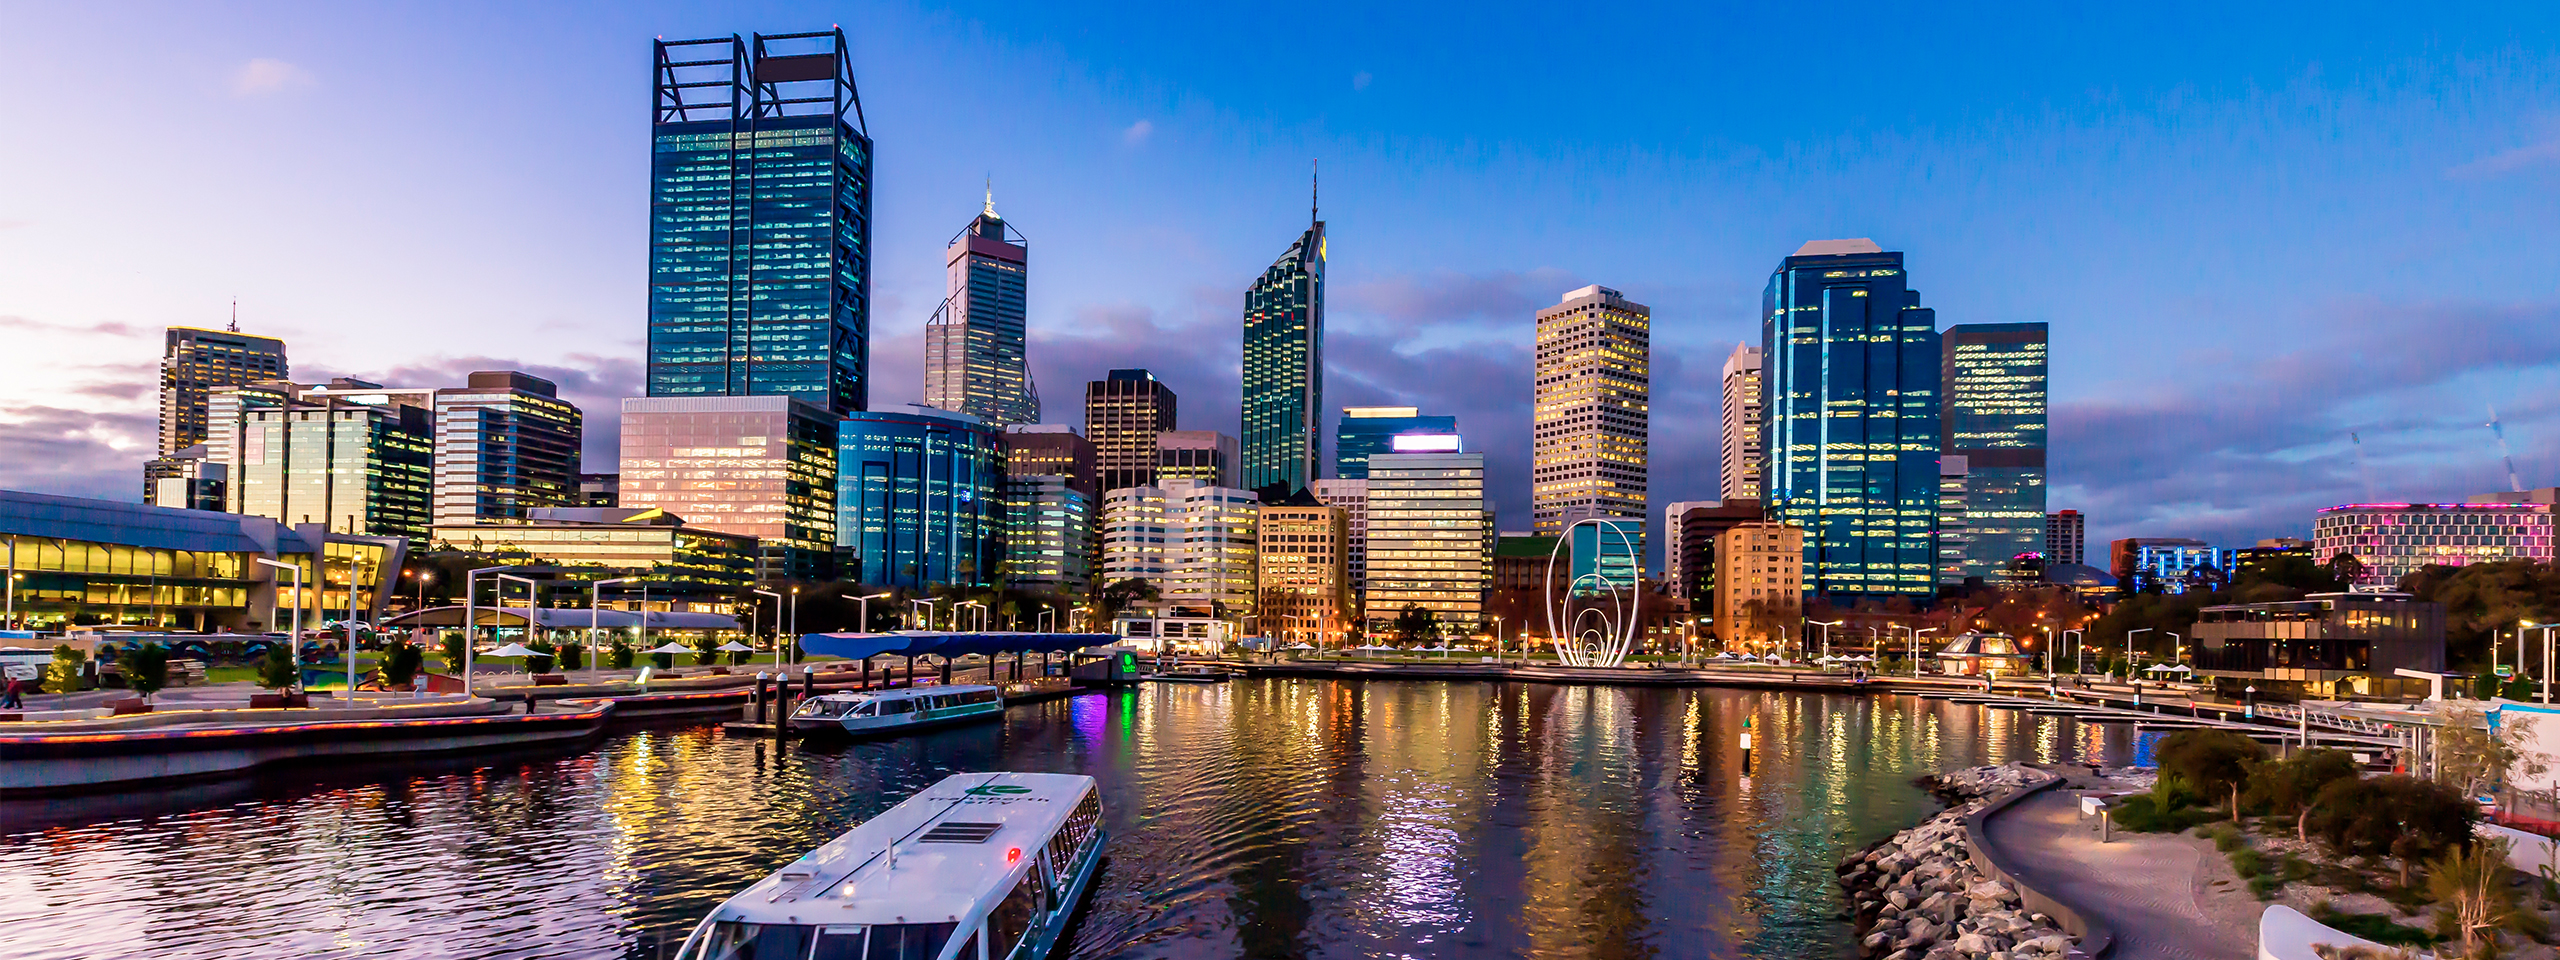 Perth City Tourism Aat Kings